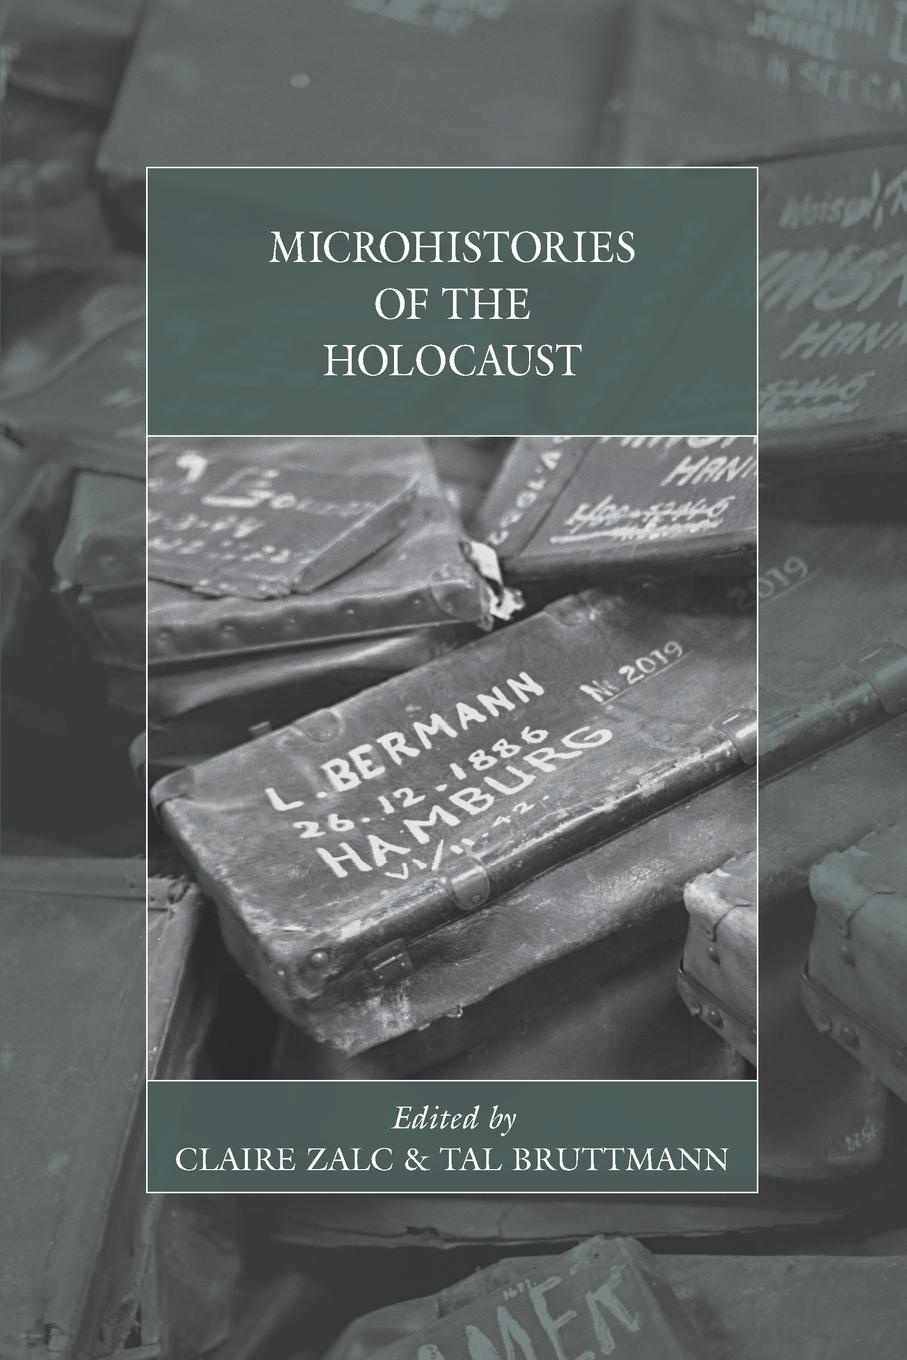 Microhistories of the Holocaust